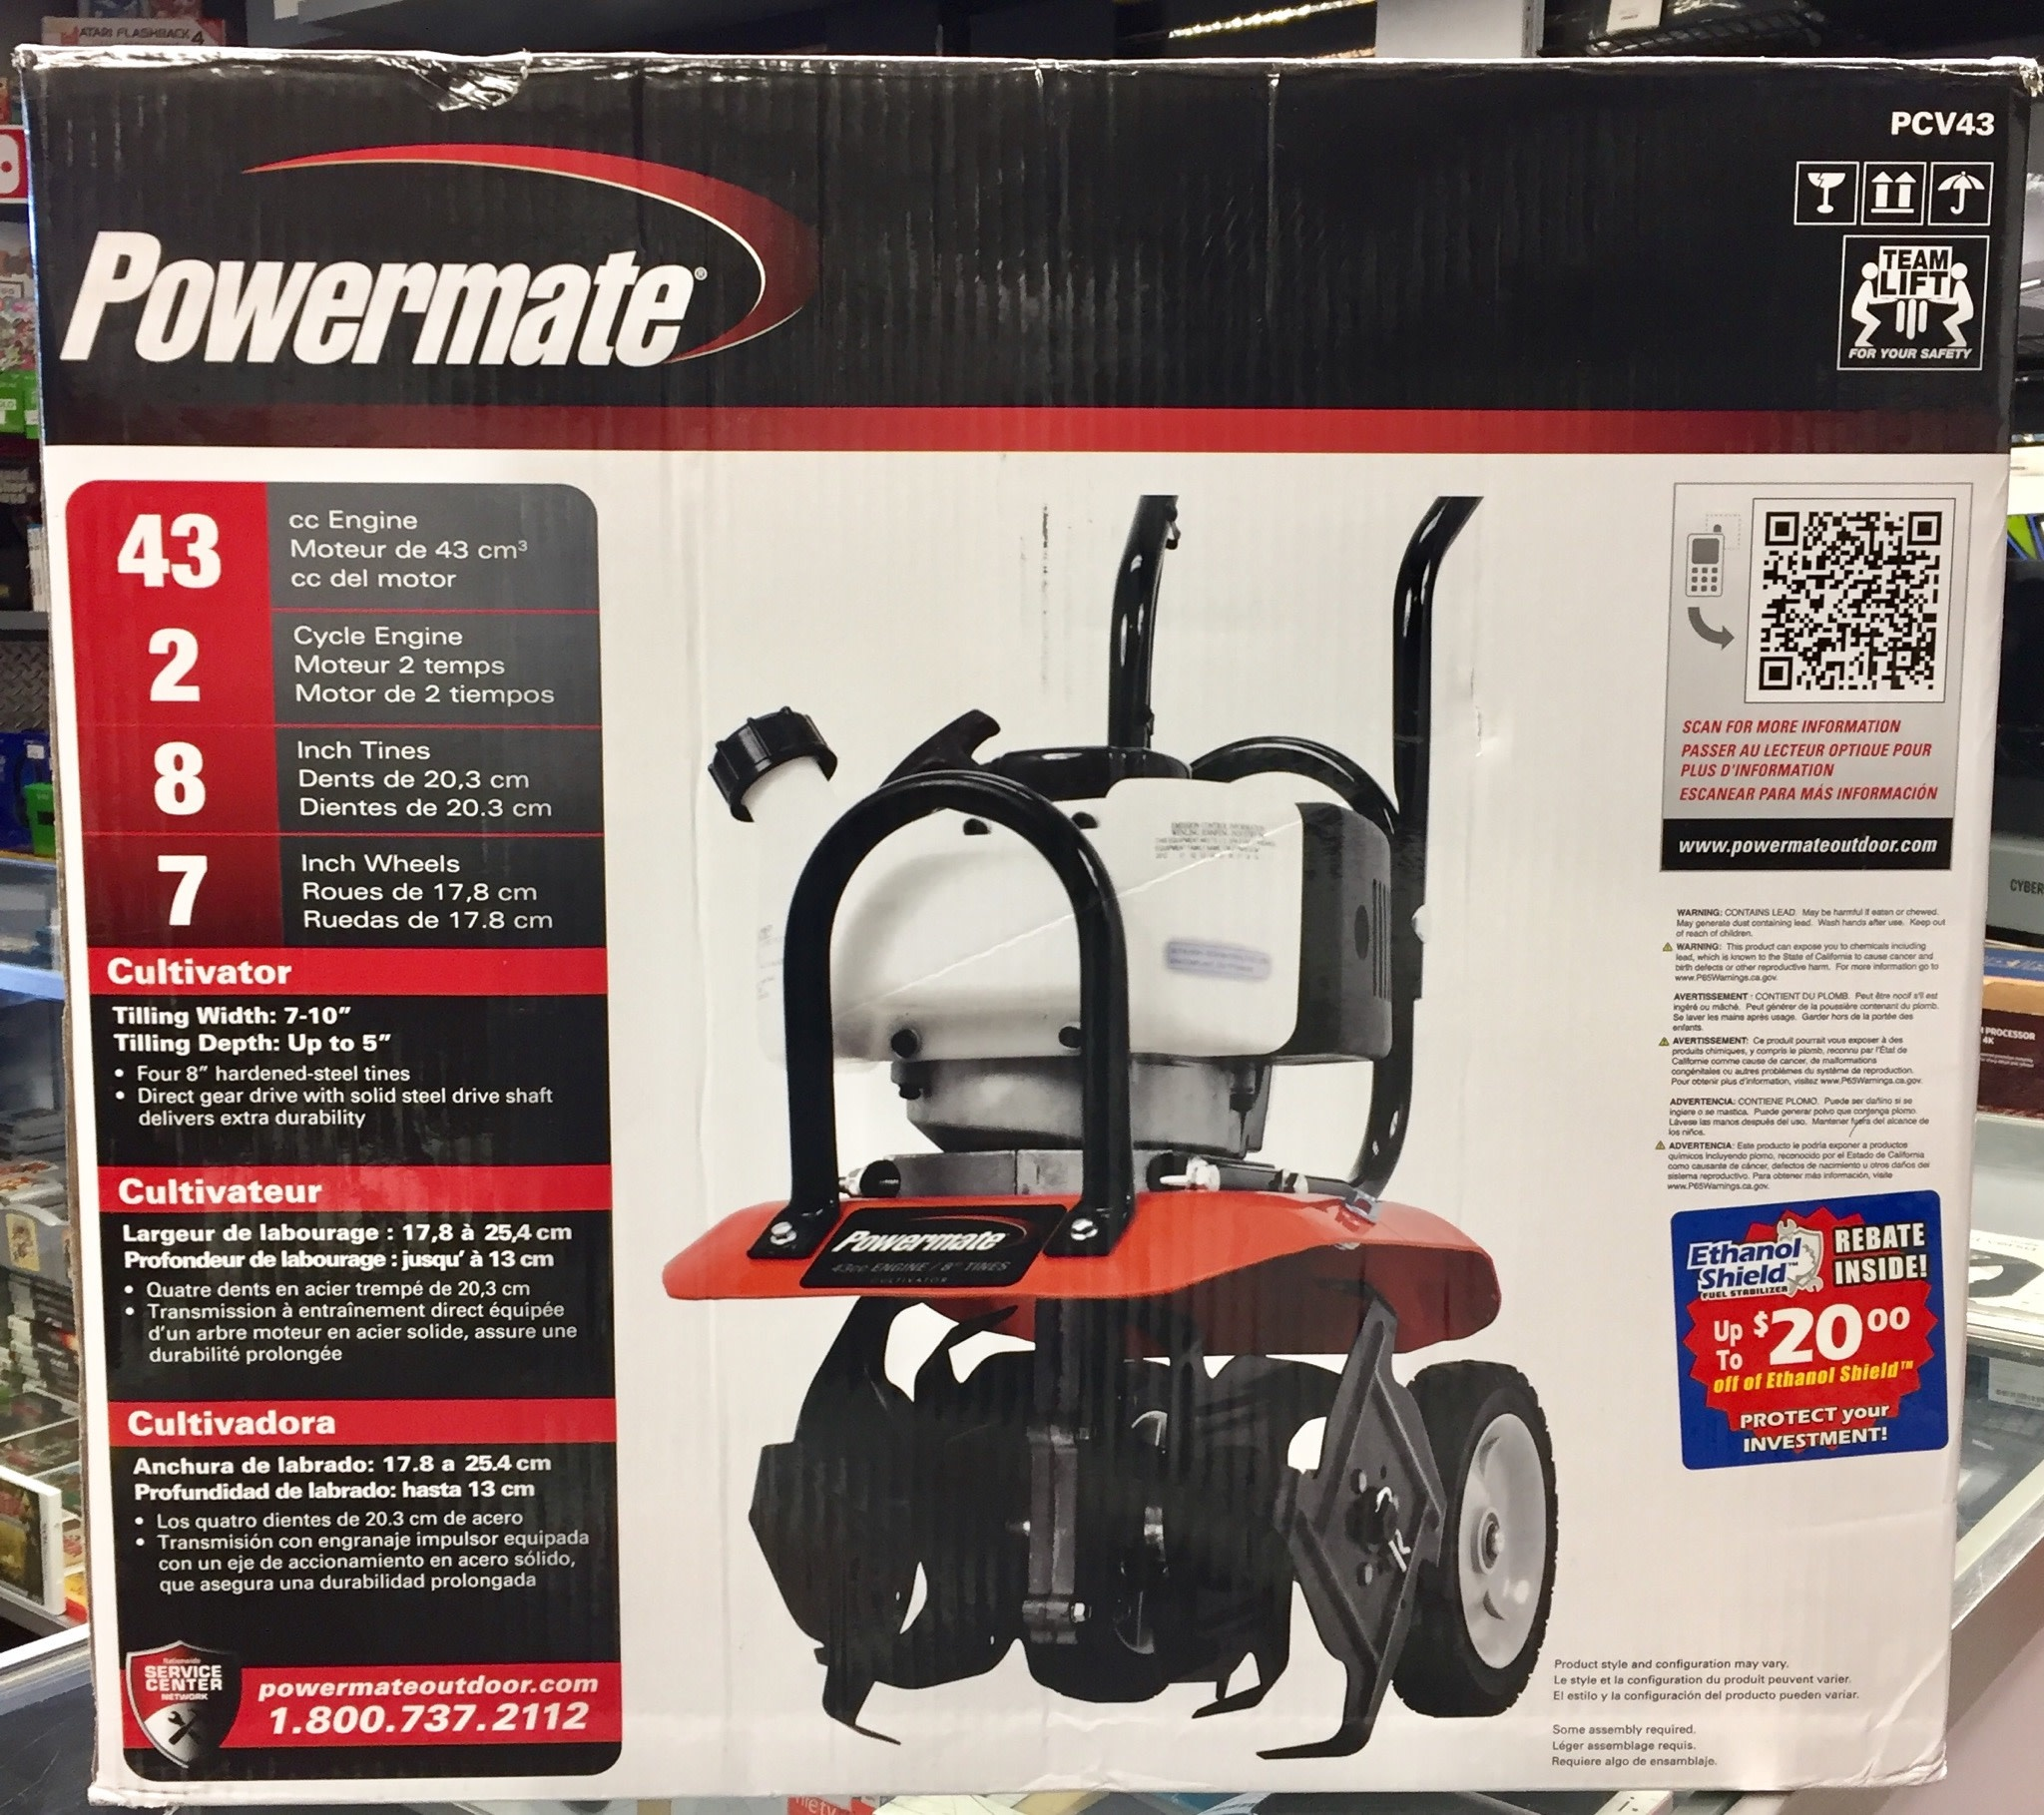 Powermate PCV43 - 43cc Engine Gas 2-Cycle Cultivator - New Open Box